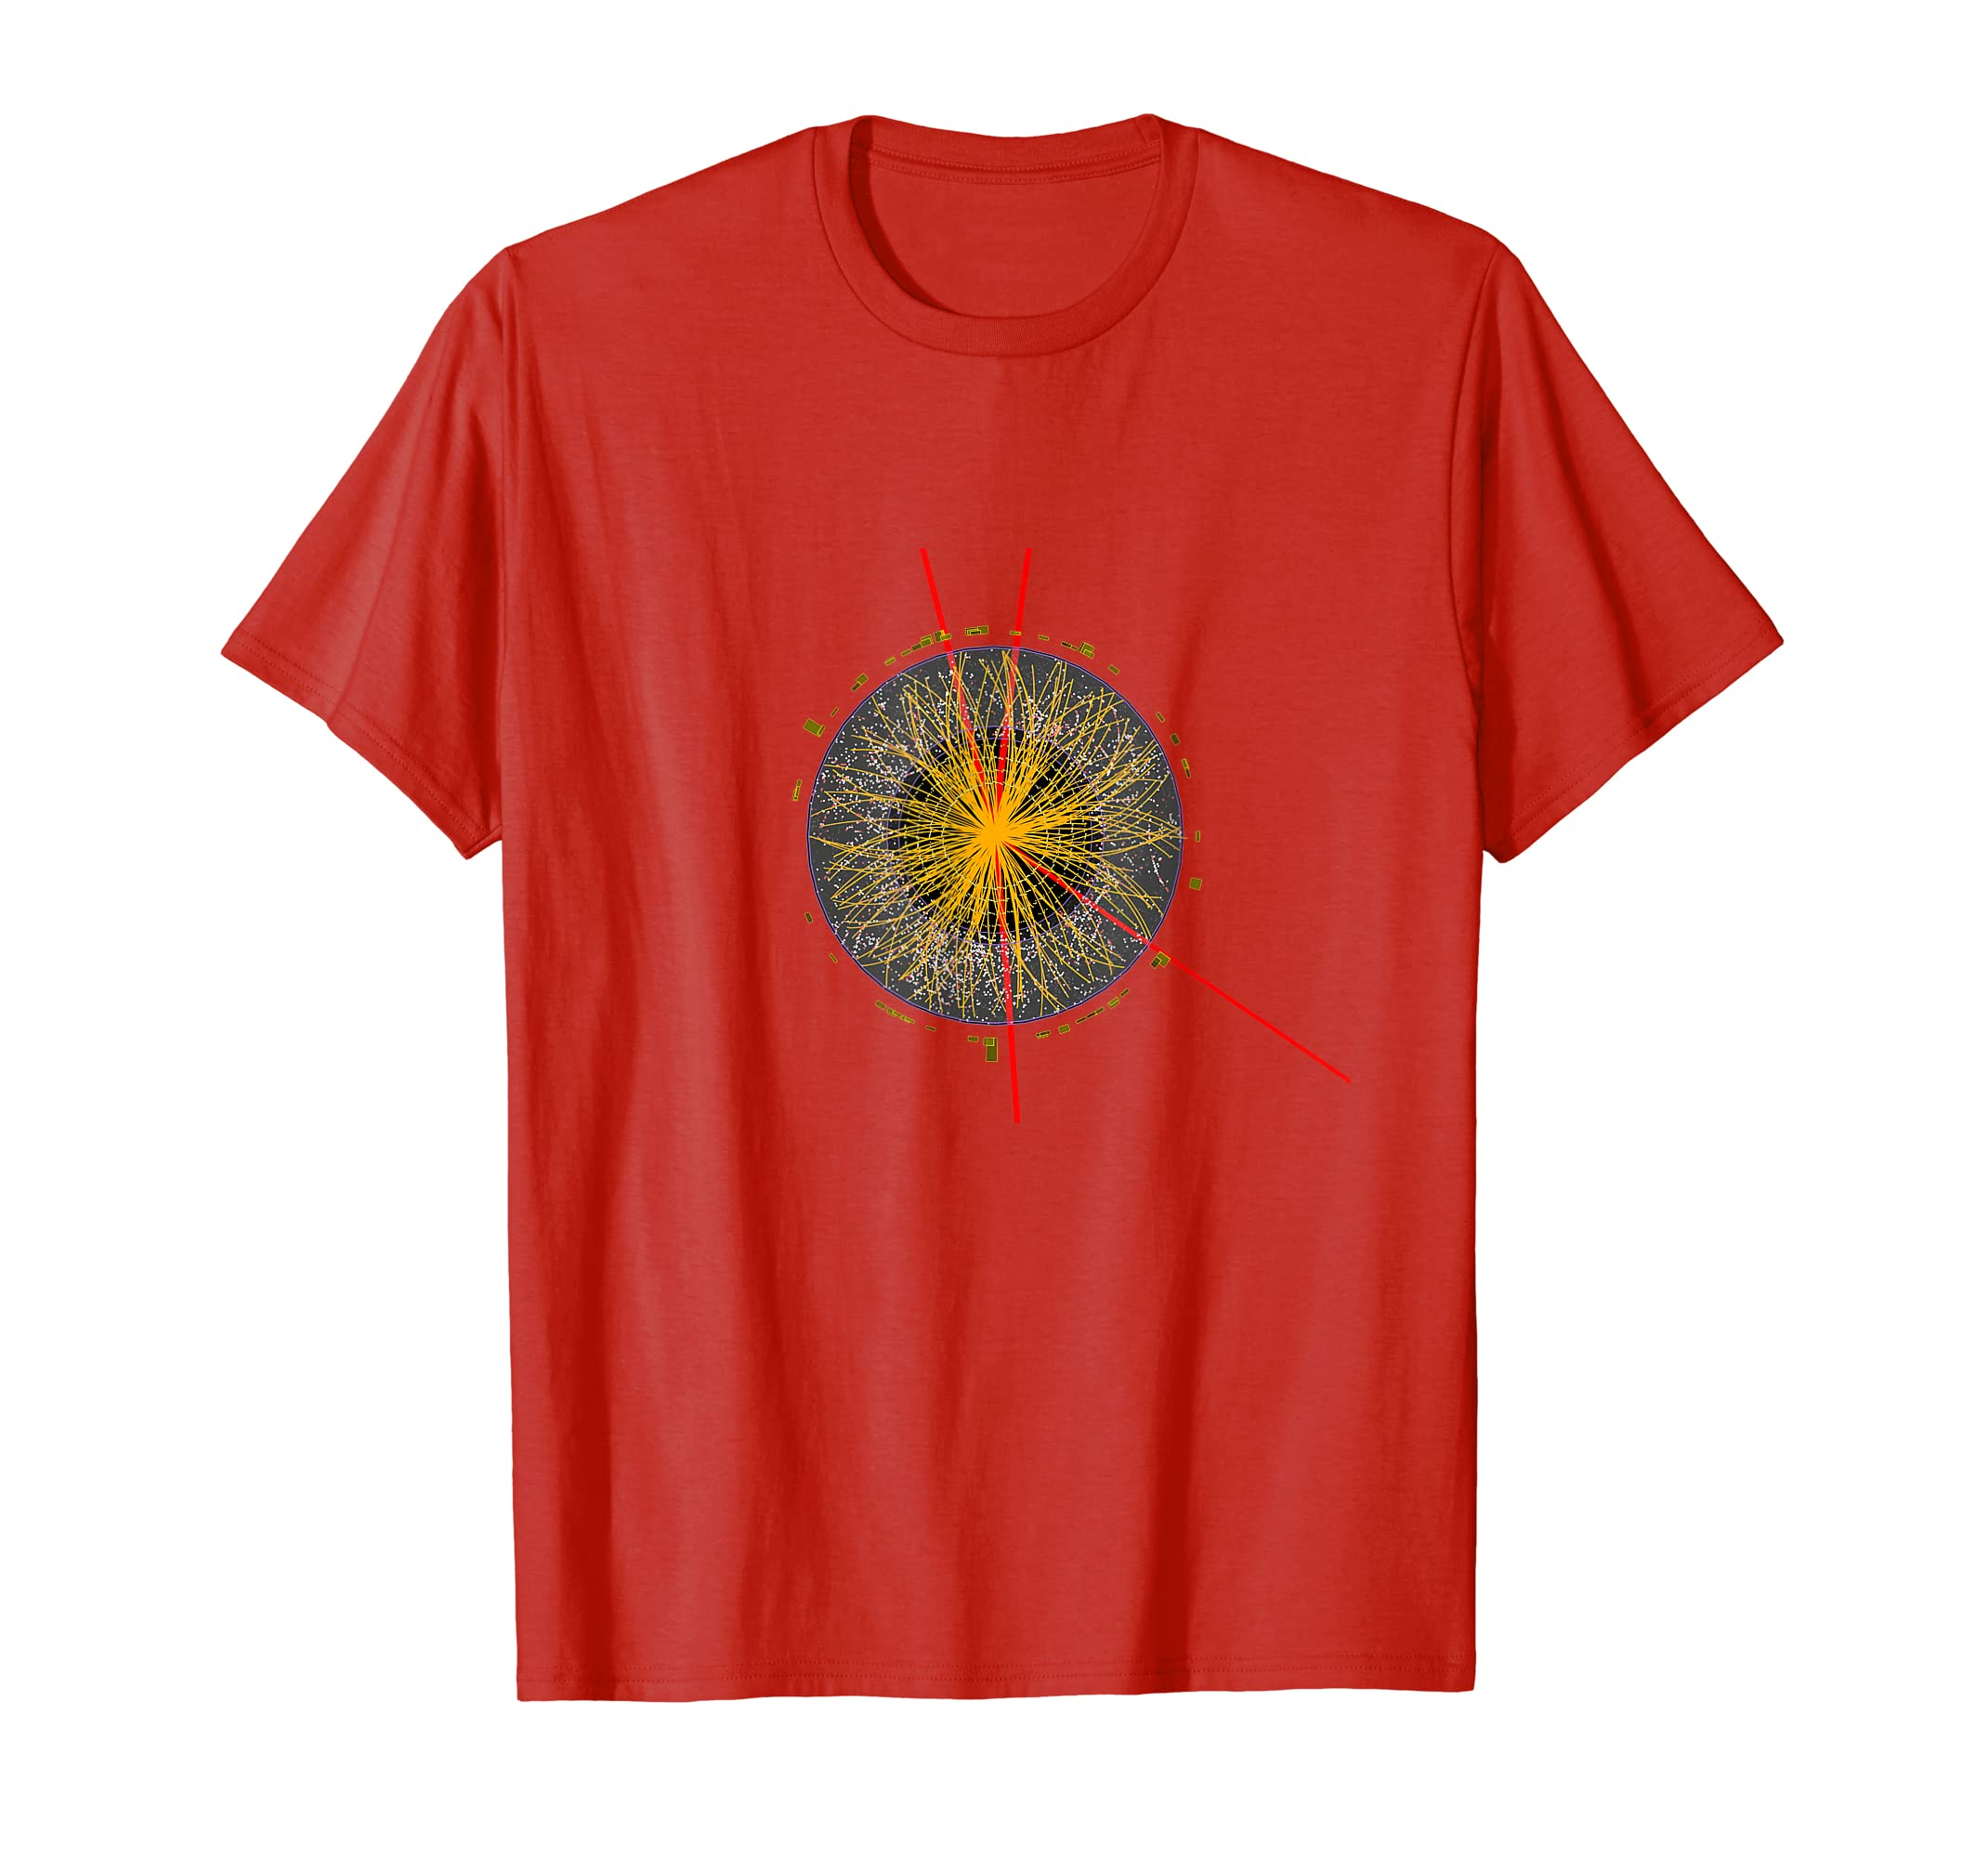 25017be33 Amazon.com: LHC Particle Physics Higgs Boson T-Shirt For Physics Teacher:  Clothing